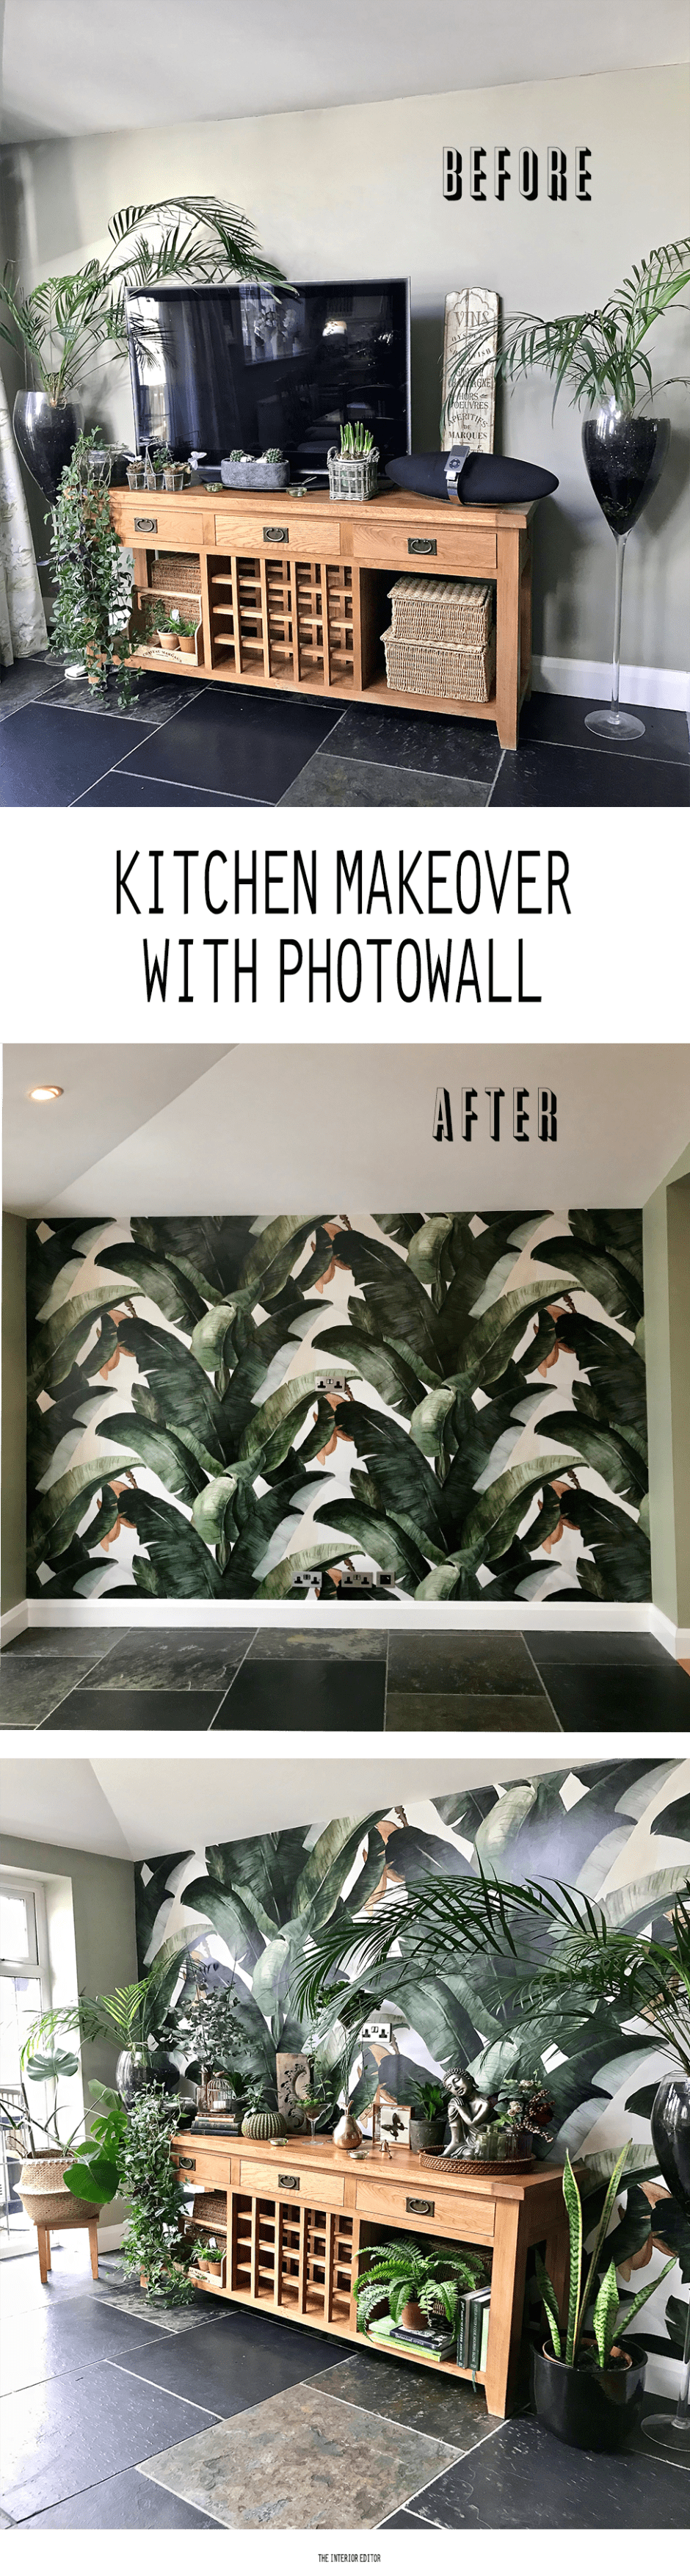 Kitchen Makeover with Photowall